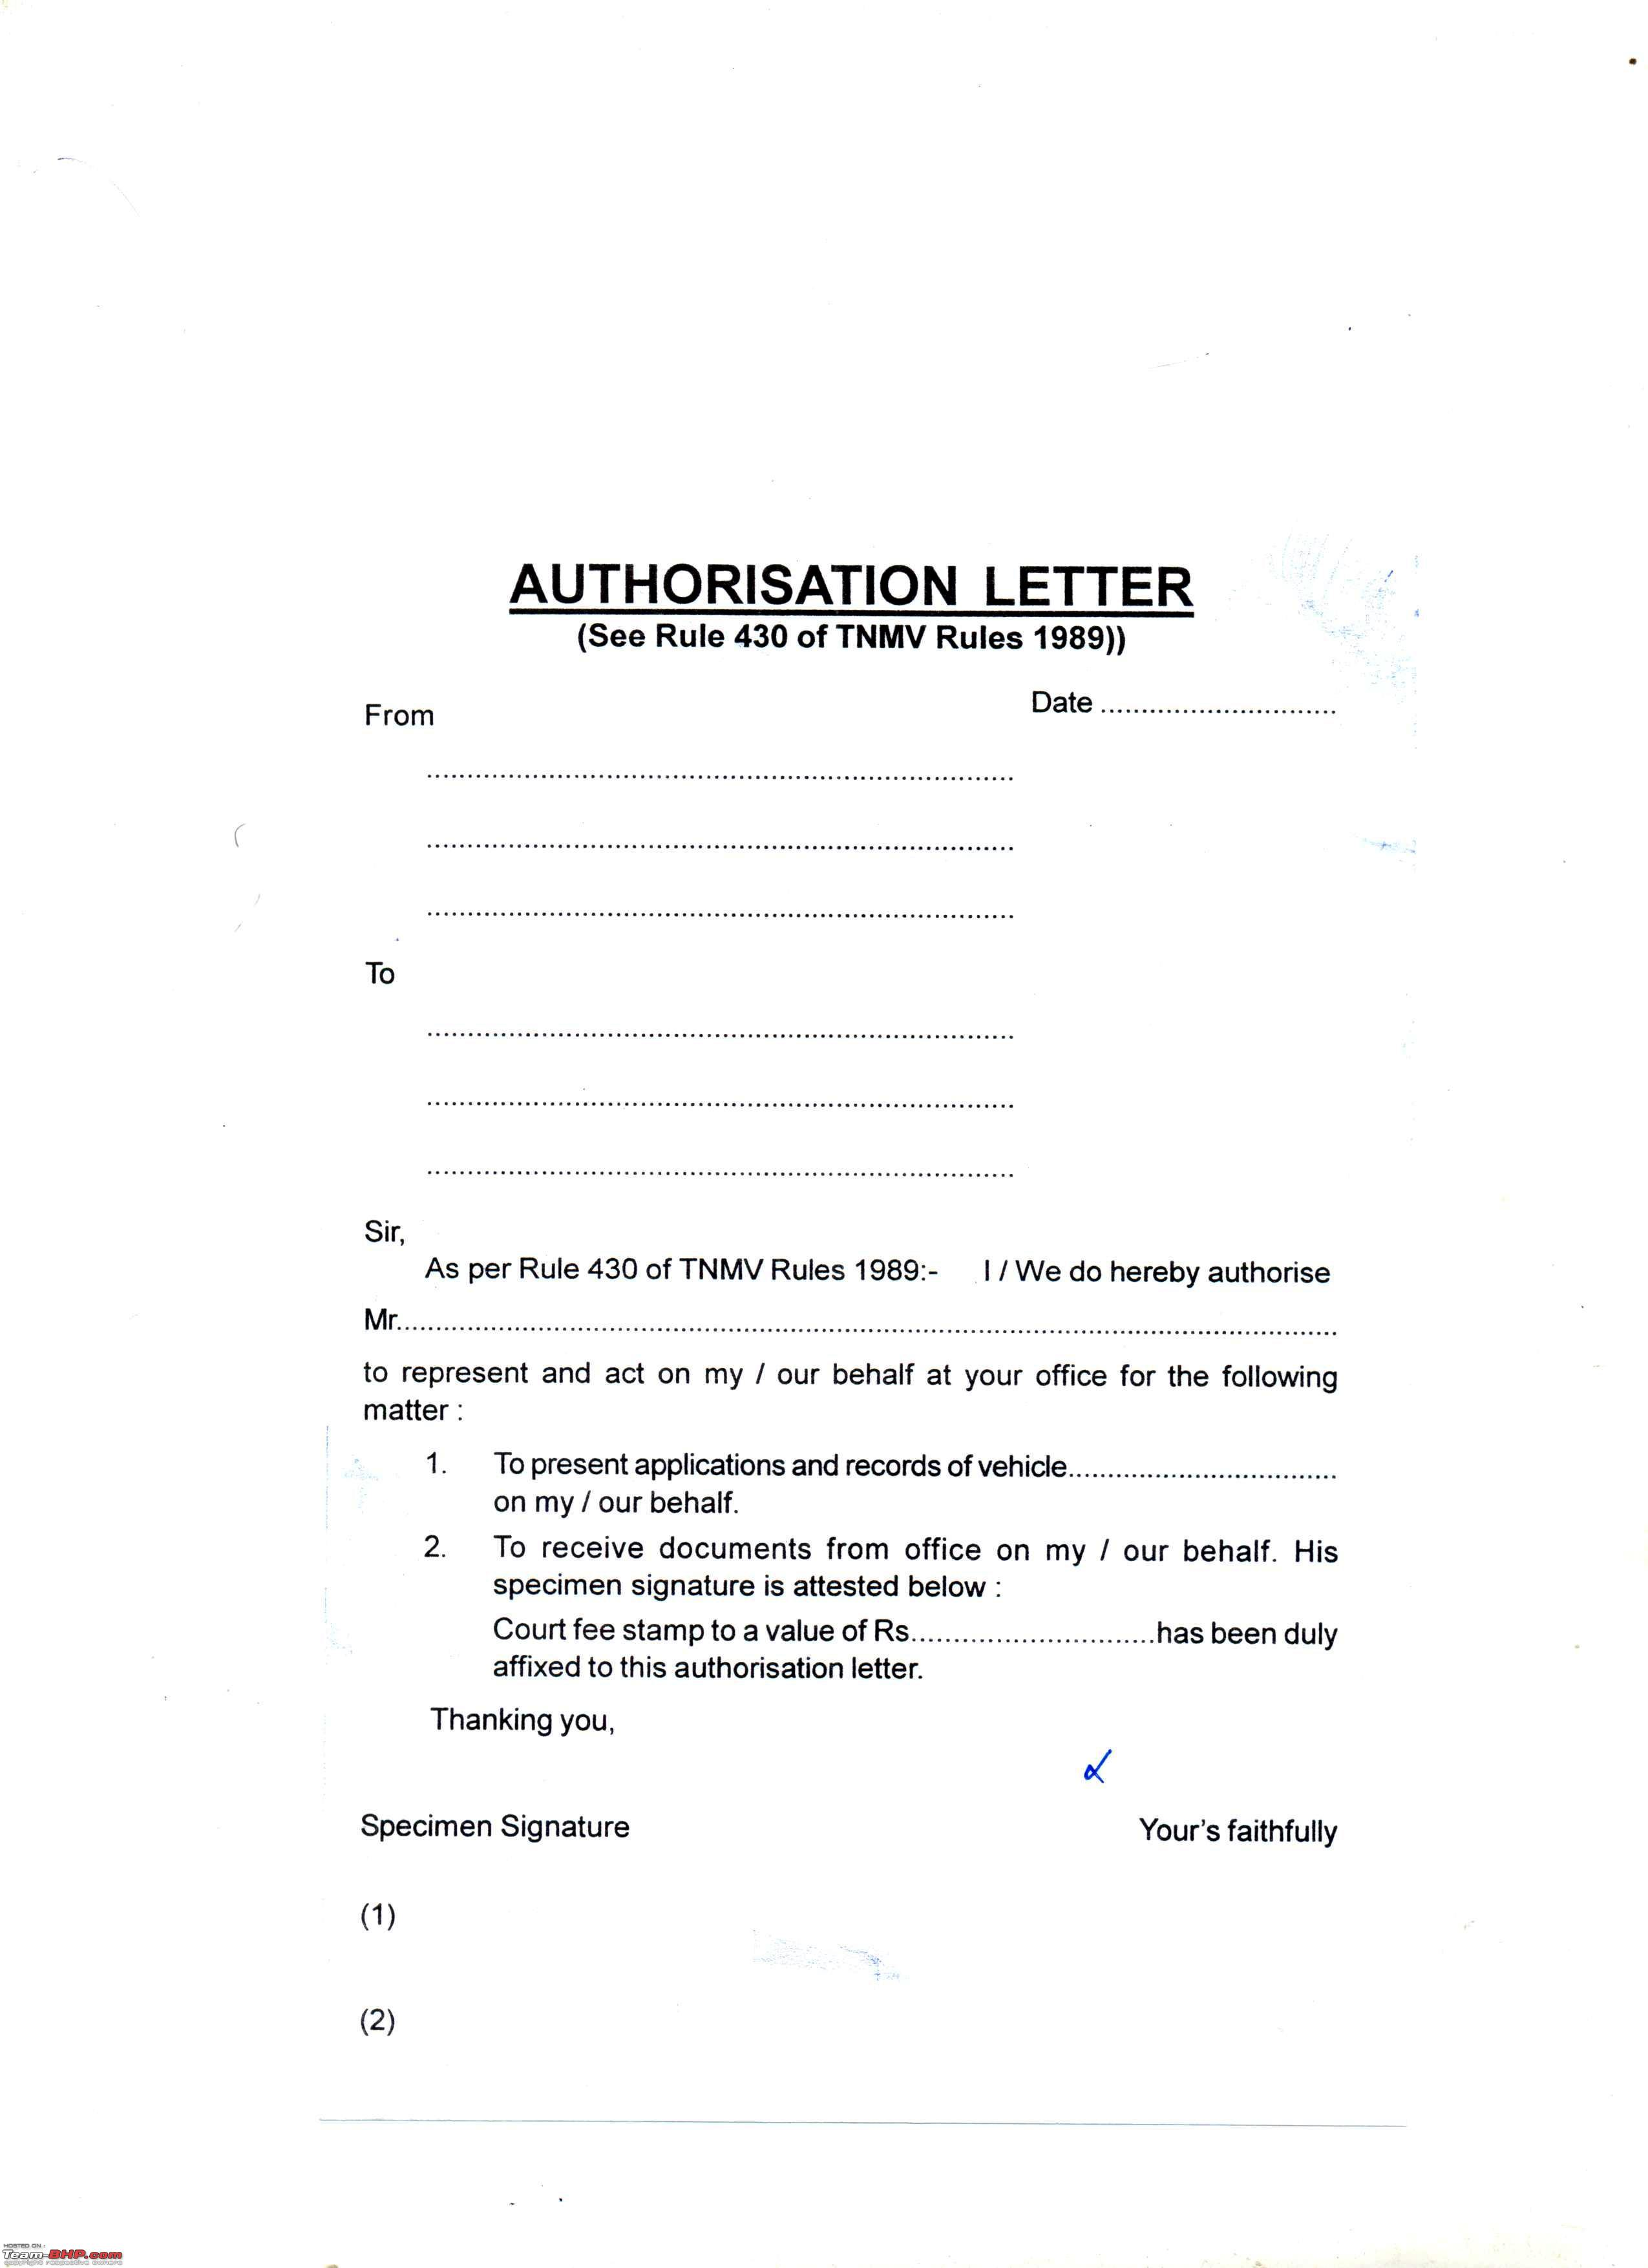 LETTER OF AUTHORIZATION TO DRIVE CAR ~ Sample & Templates